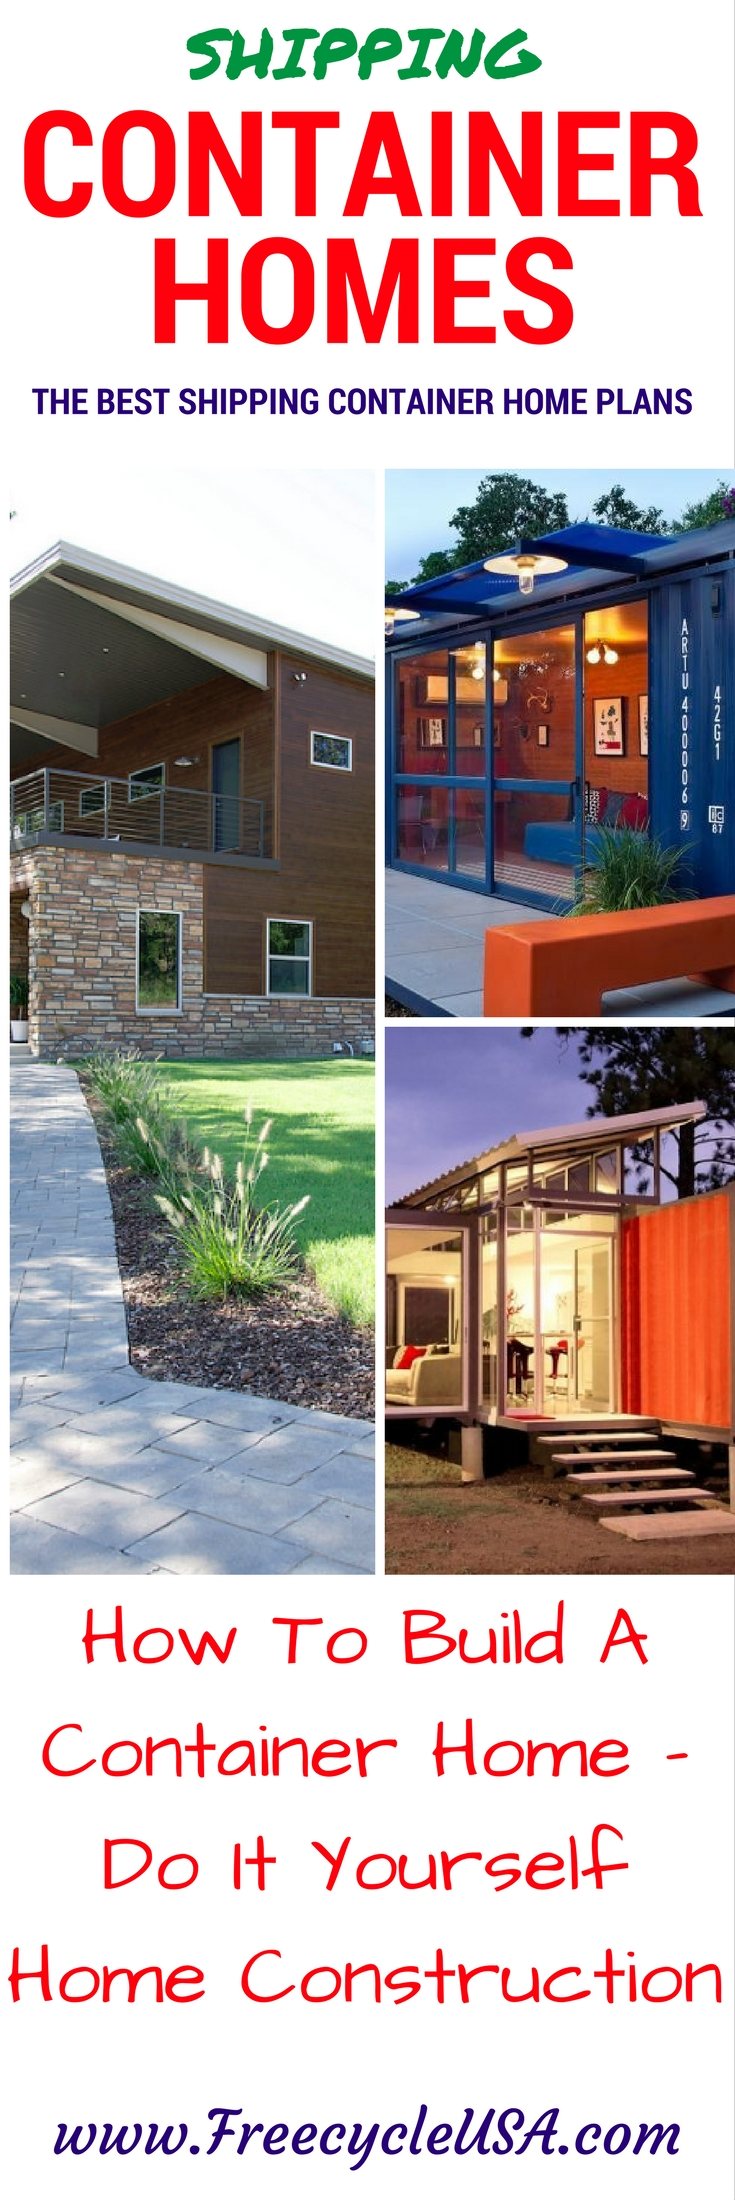 Freecycle usa - Container homes usa ...